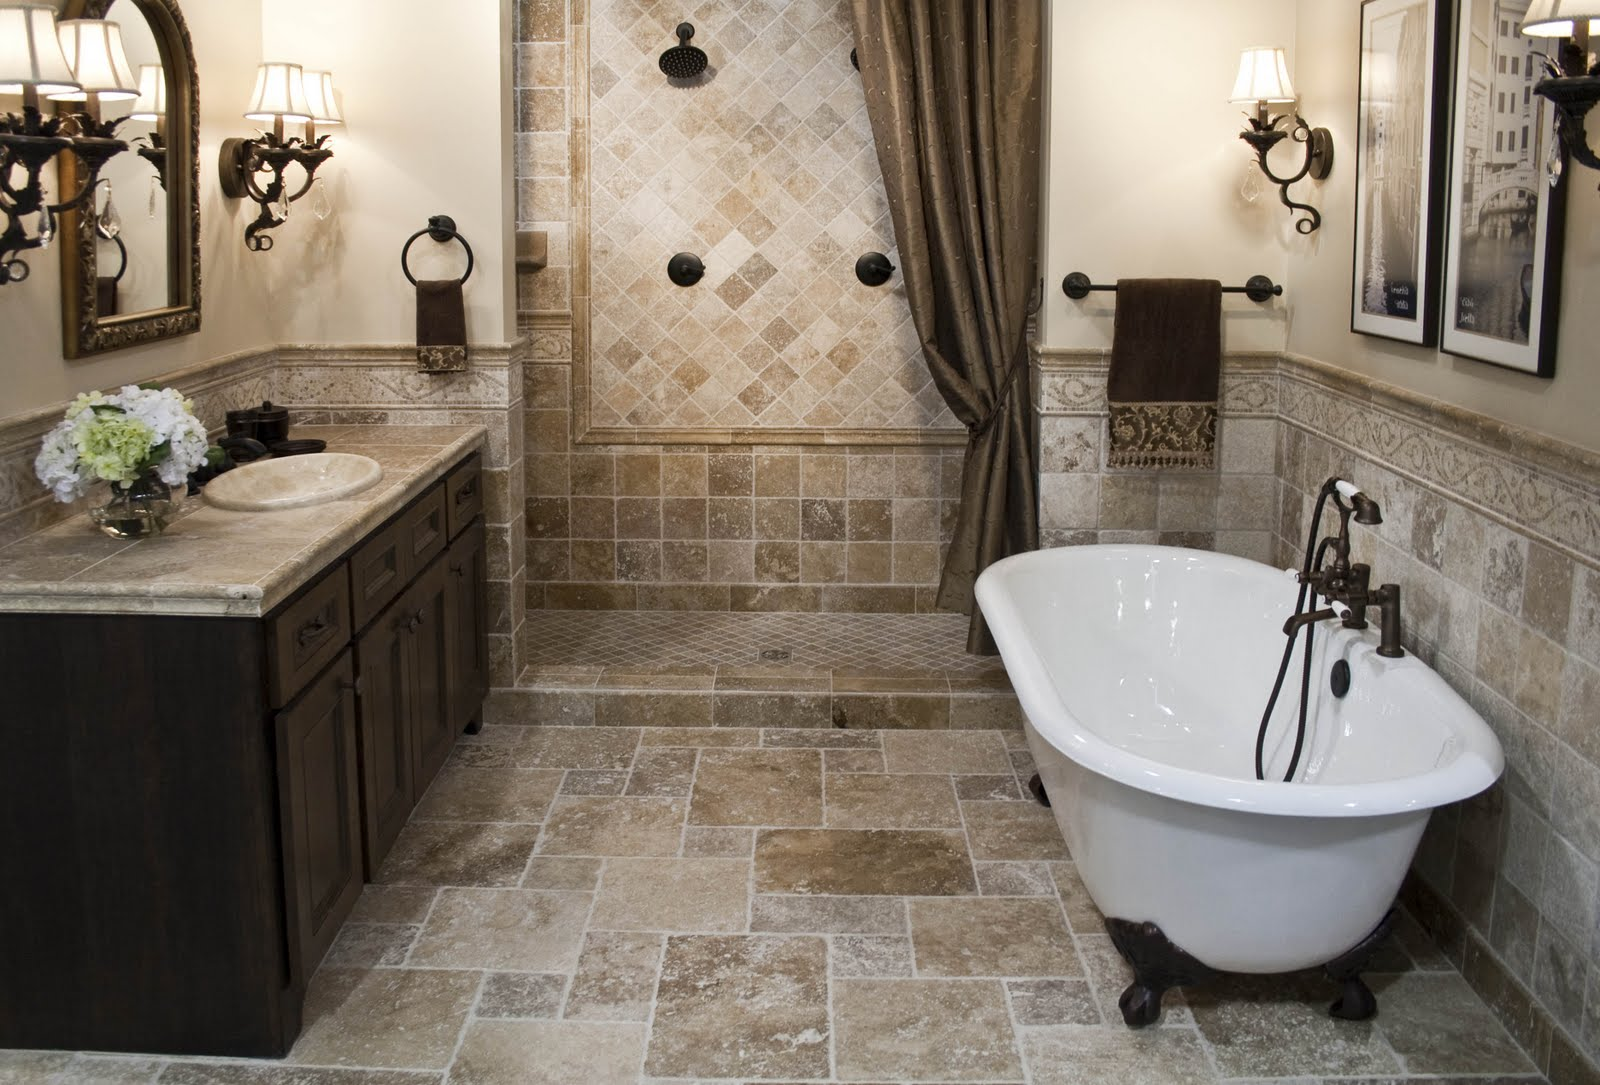 Tips For DIY Bathroom Renovations On A Budget - Bathroom renovation ideas on a budget